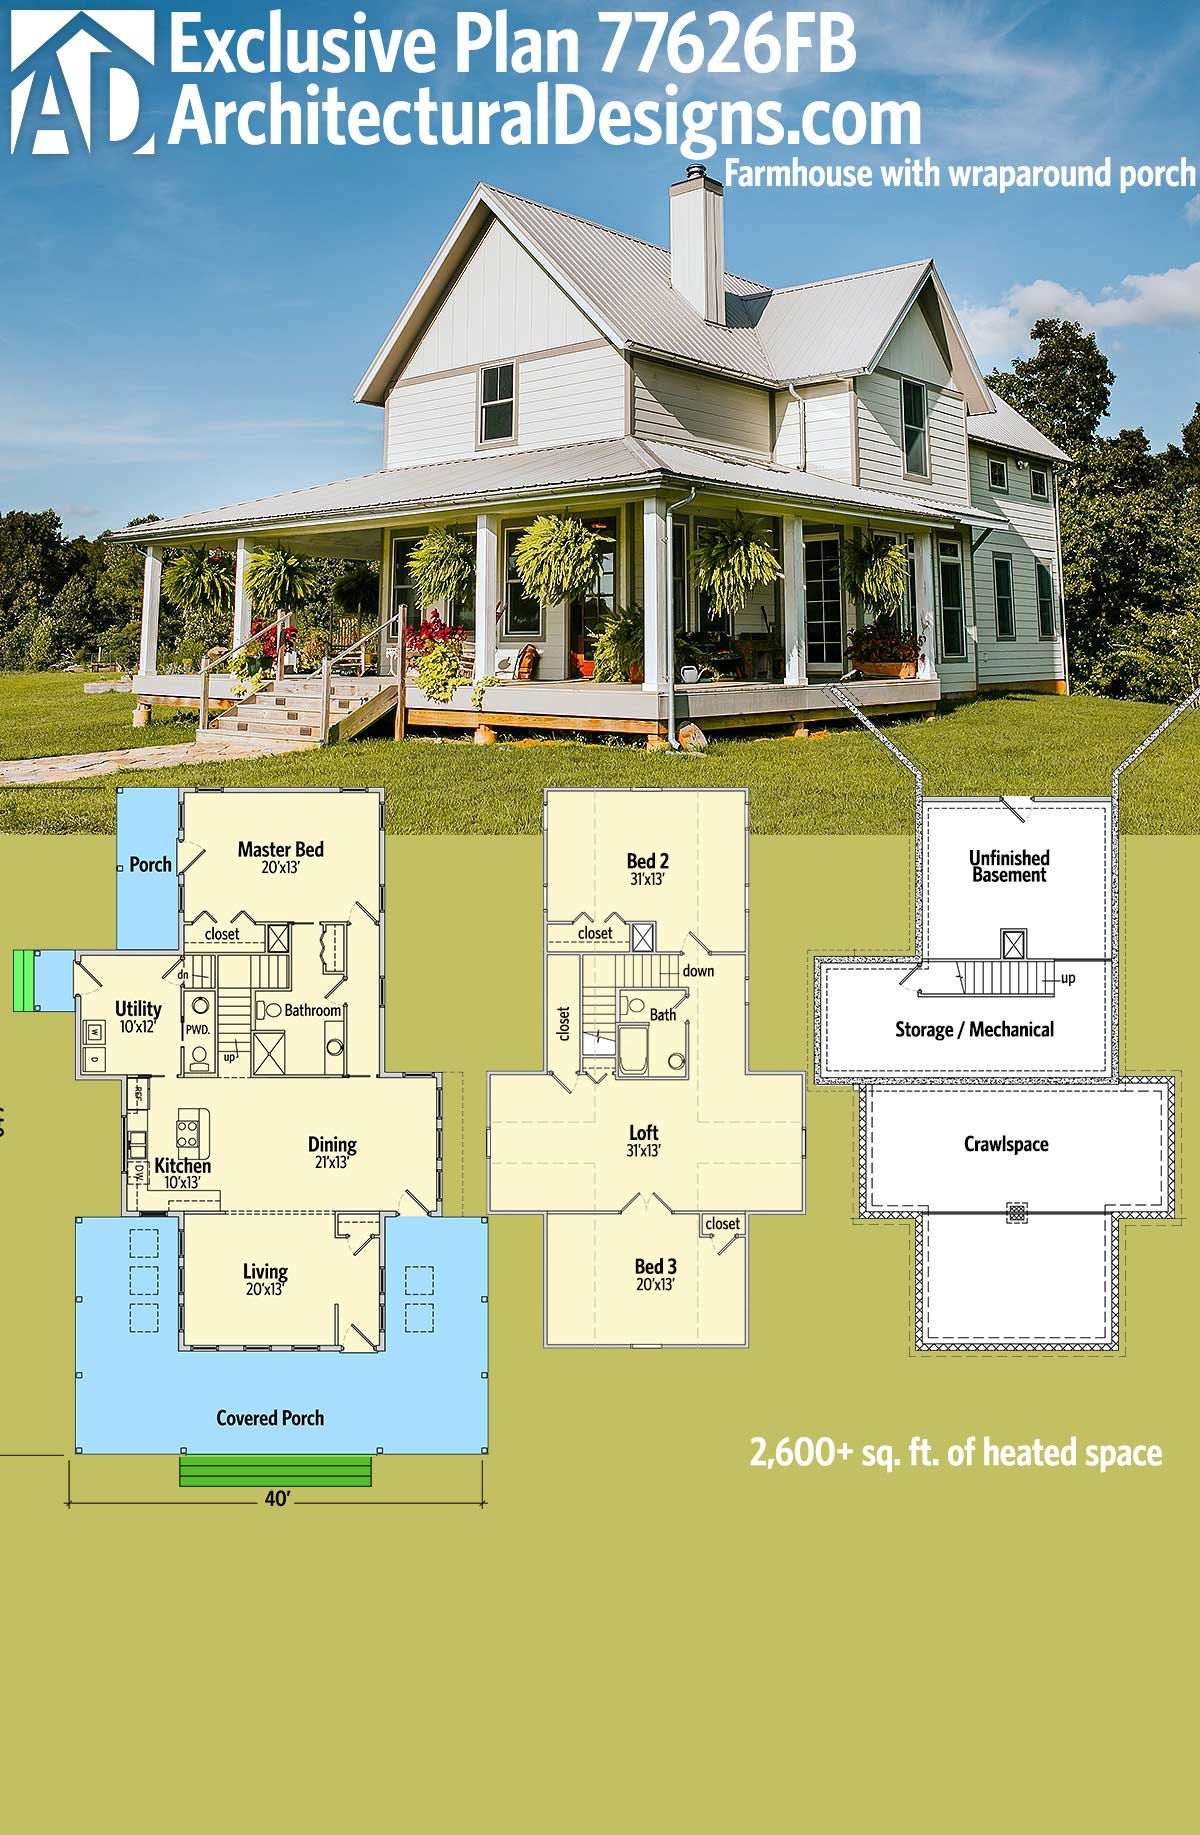 Plan 77626FB Exclusive 3 Bed Farmhouse Plan with Wrap